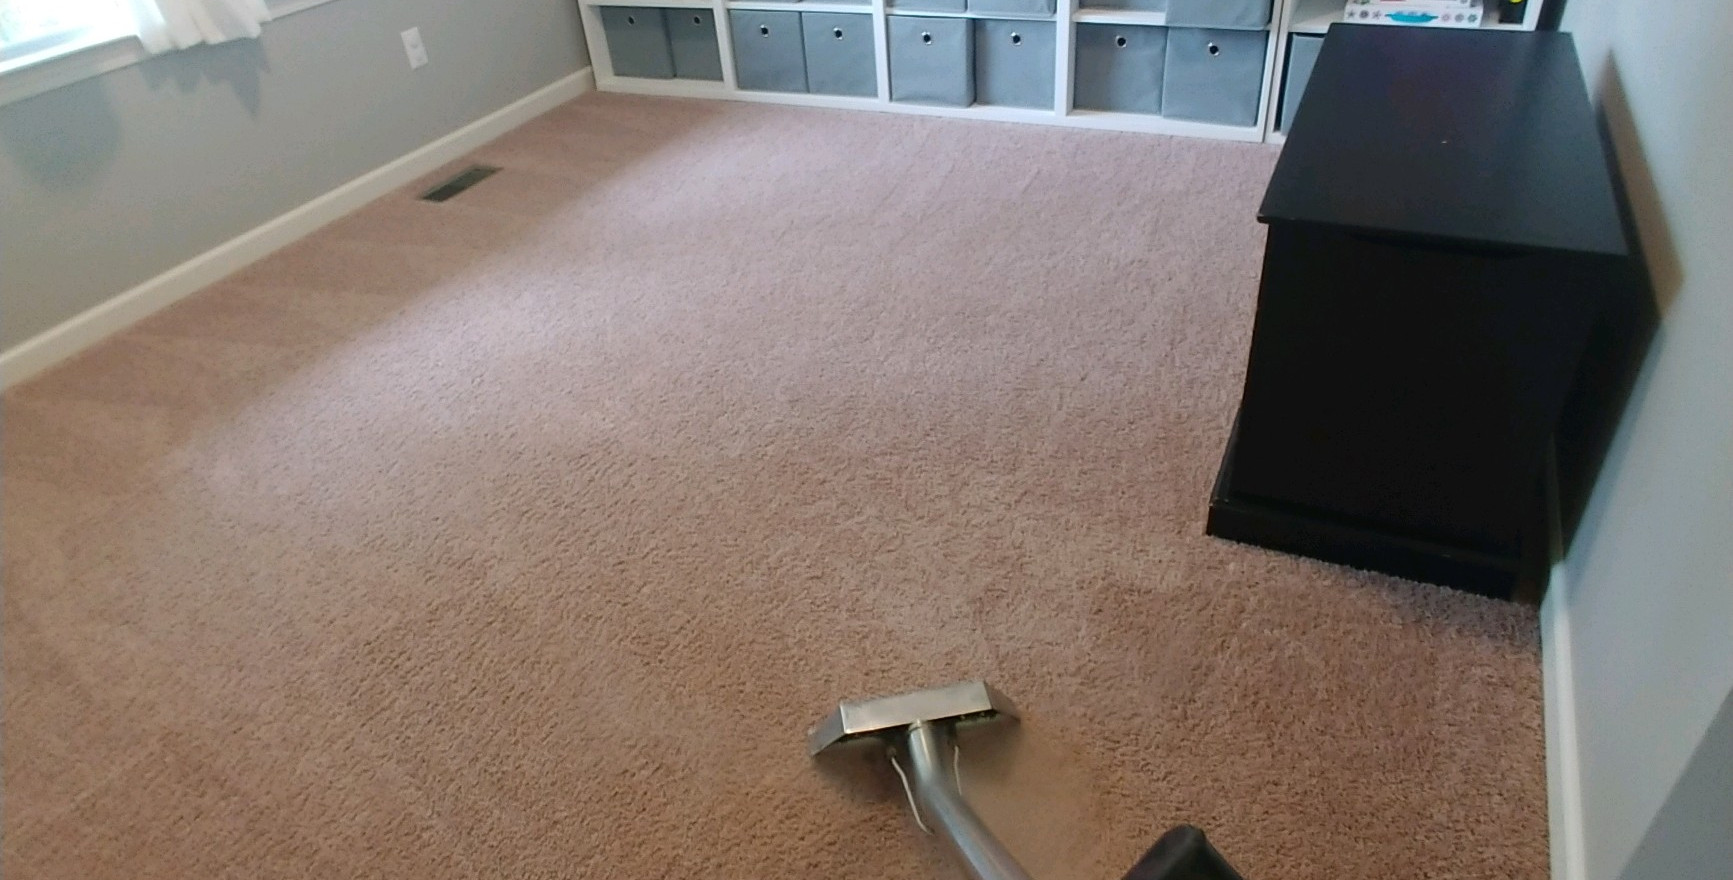 Eco-Friendly Carpet Cleaning In West Bloomfield Michigan